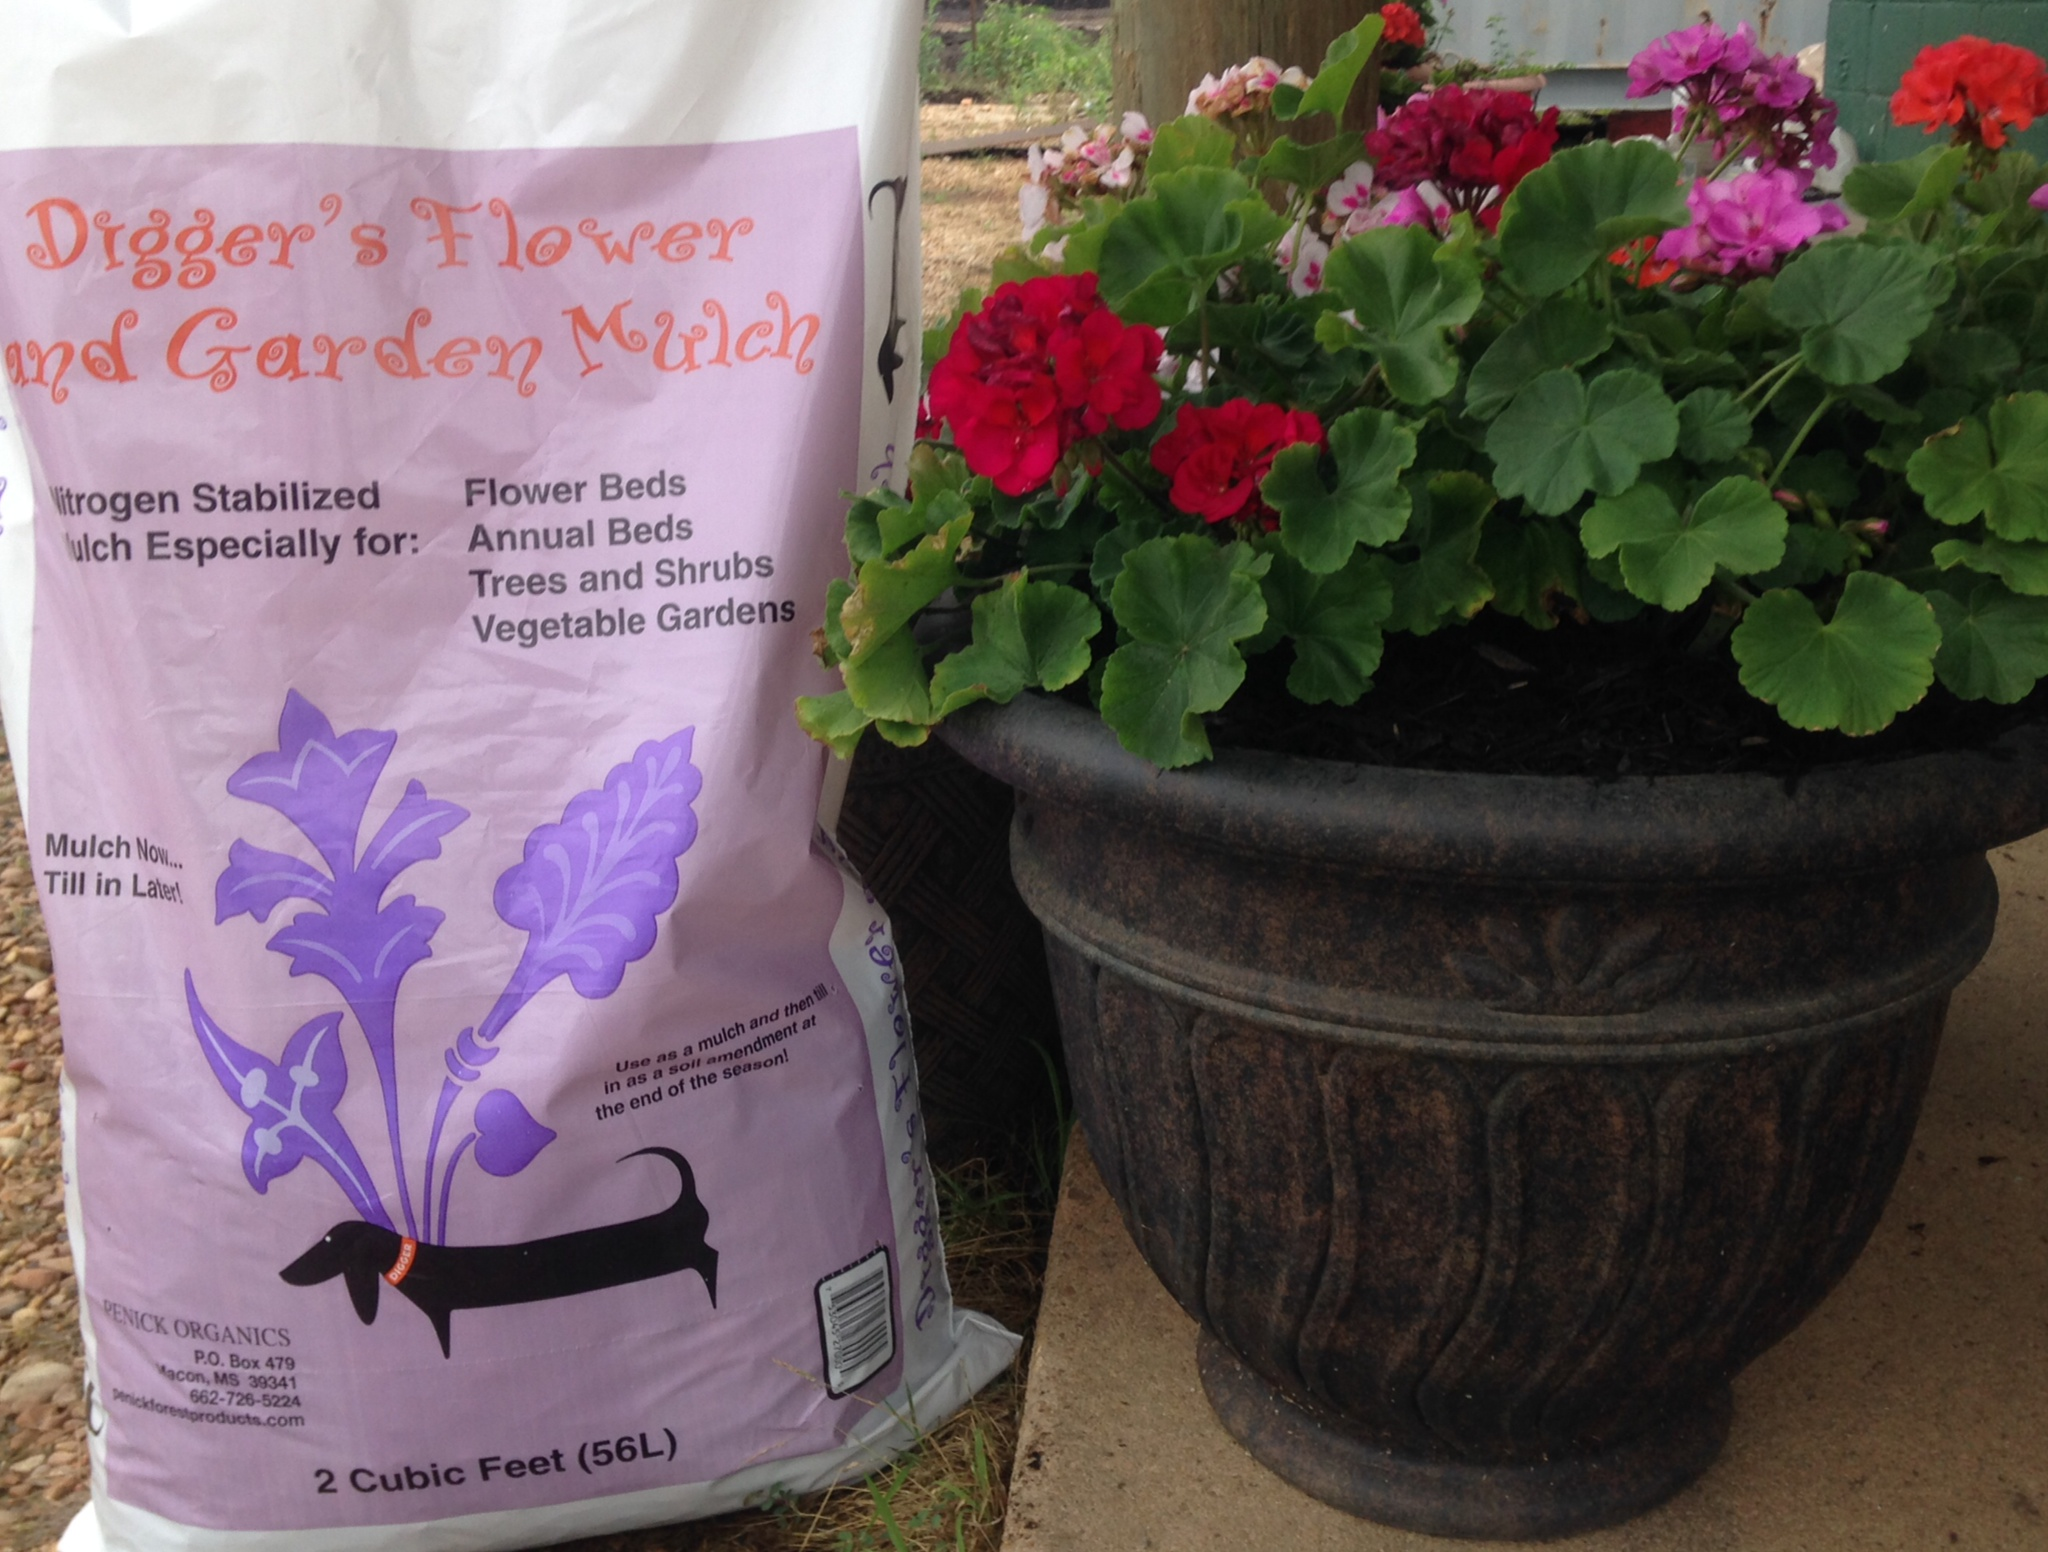 Flower & Garden Mulch in a 2 cf bag